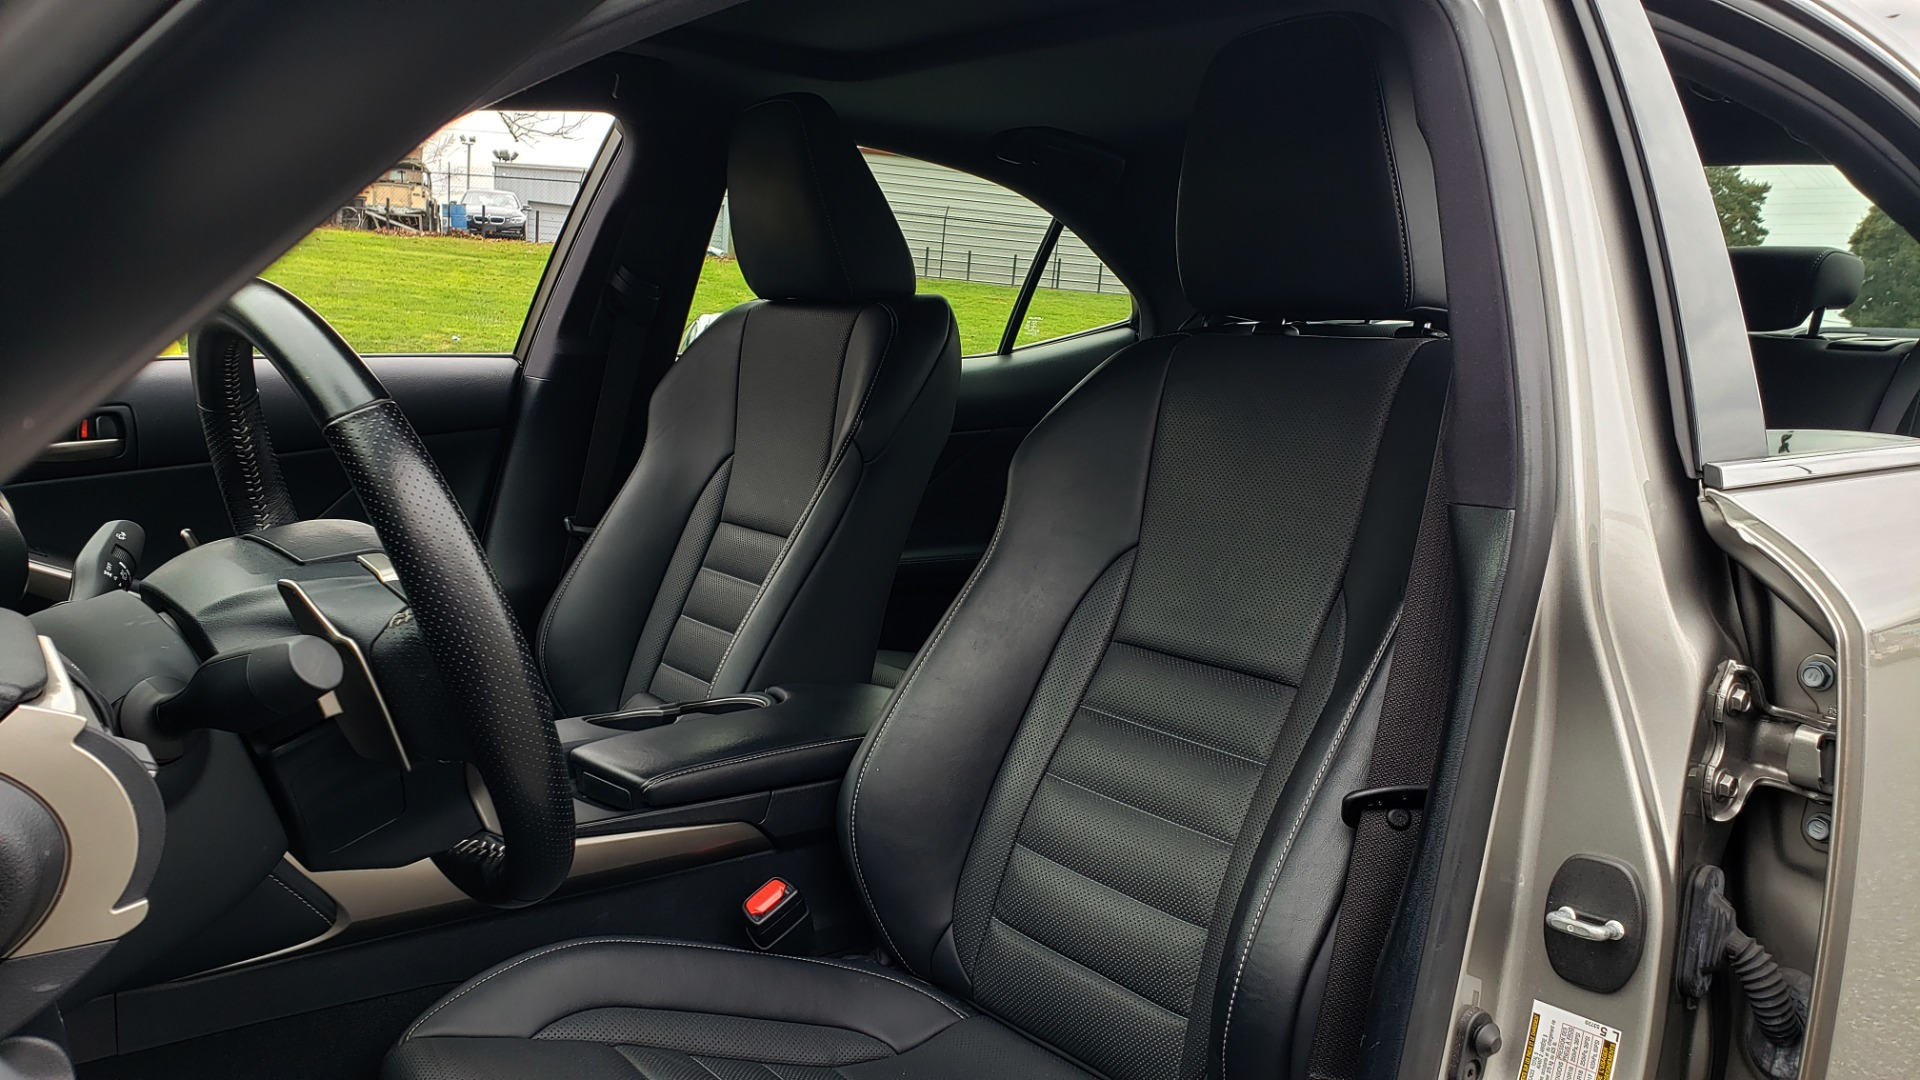 Used 2017 Lexus IS 200 TURBO F-SPORT / BSM / SUNROOF / VENT SEATS / REARVIEW for sale Sold at Formula Imports in Charlotte NC 28227 39